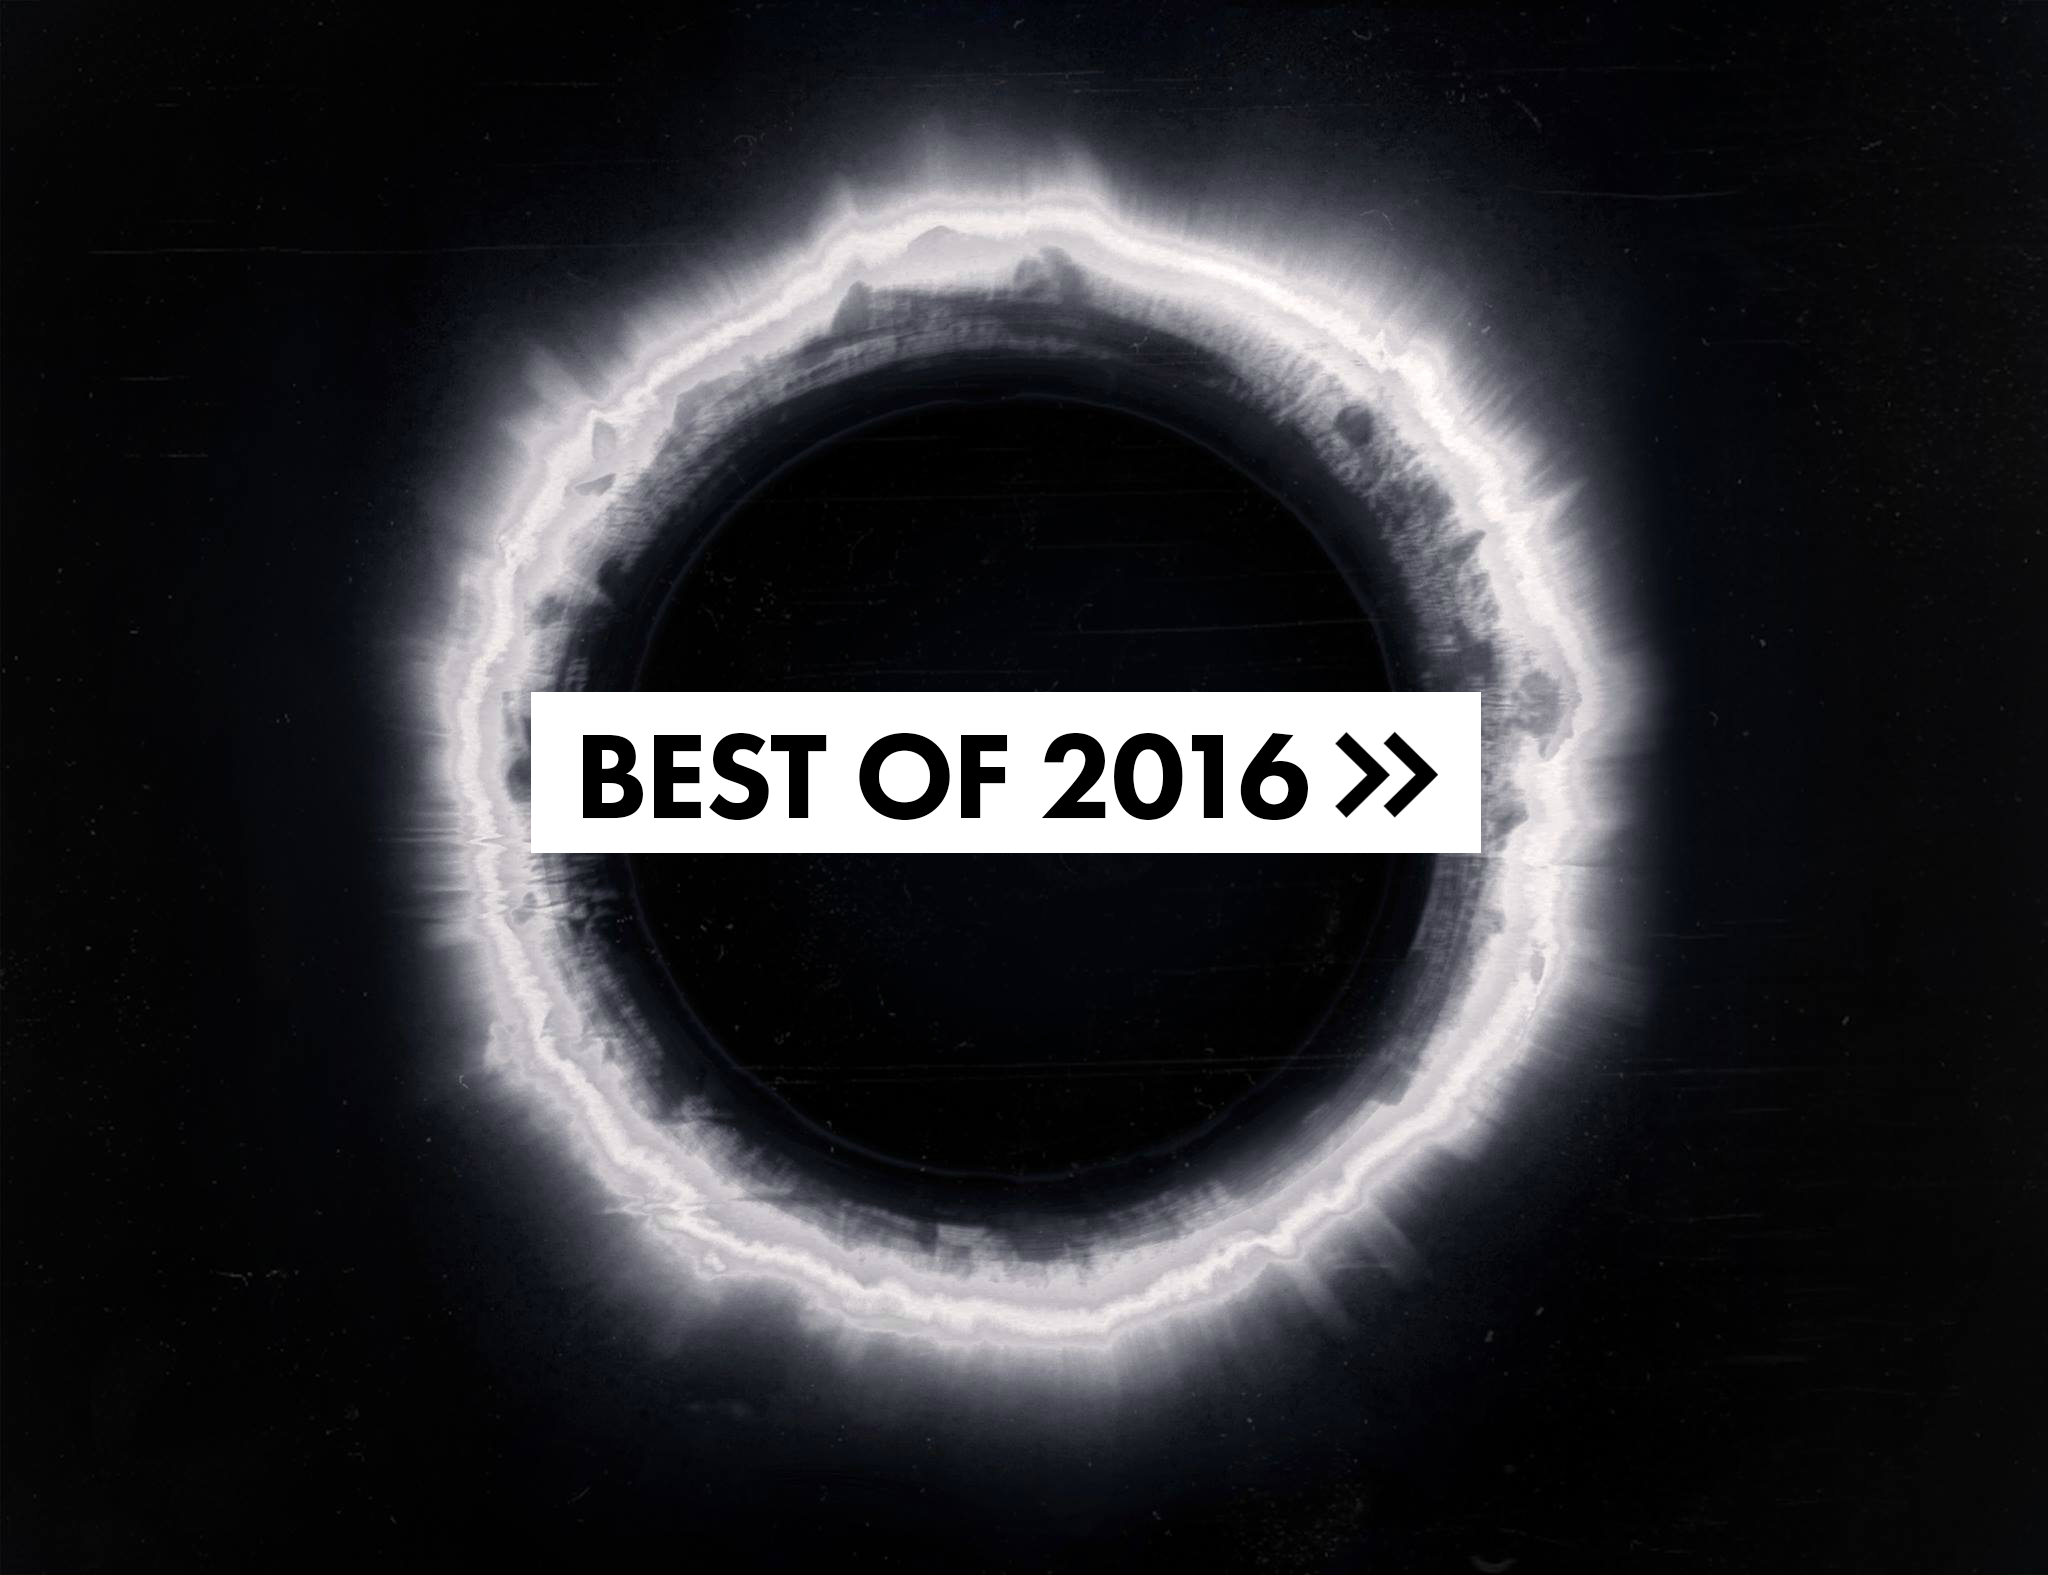 Kristina's picks for best of 2016